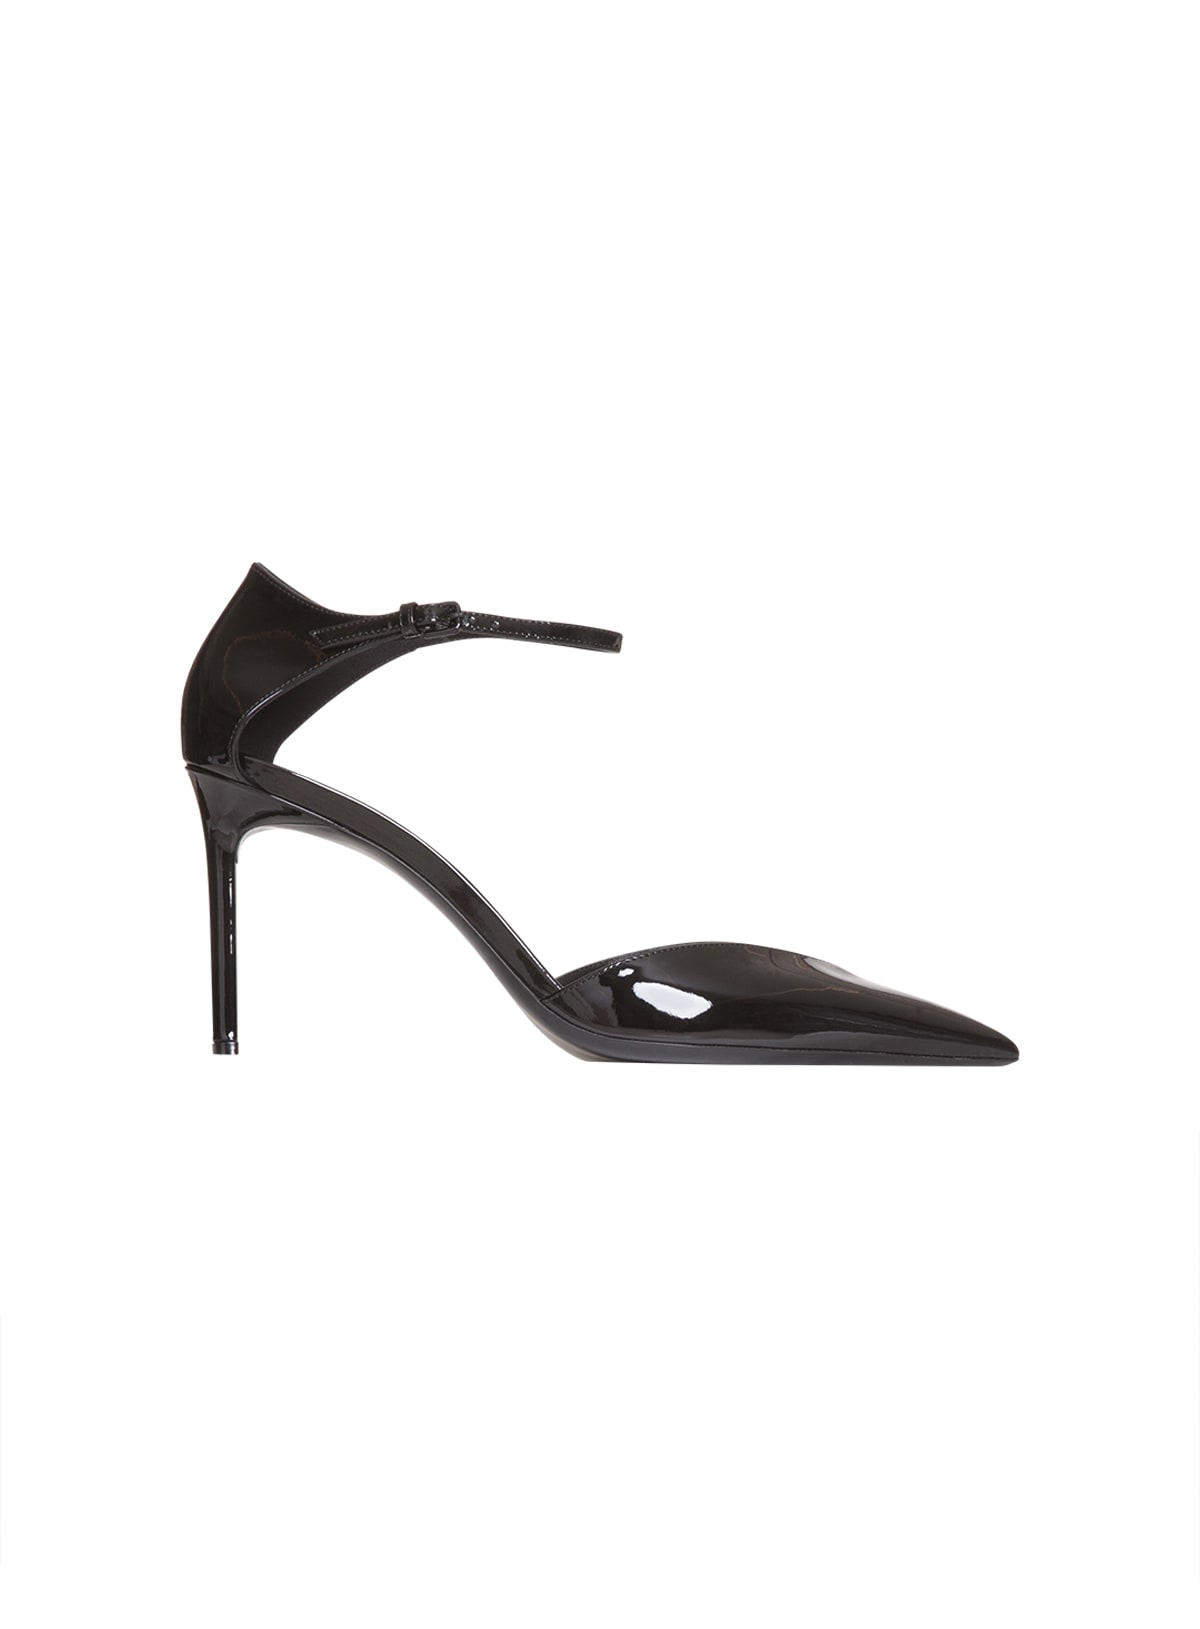 Saint Laurent Anja Dorsay Pumps In Patent Leather